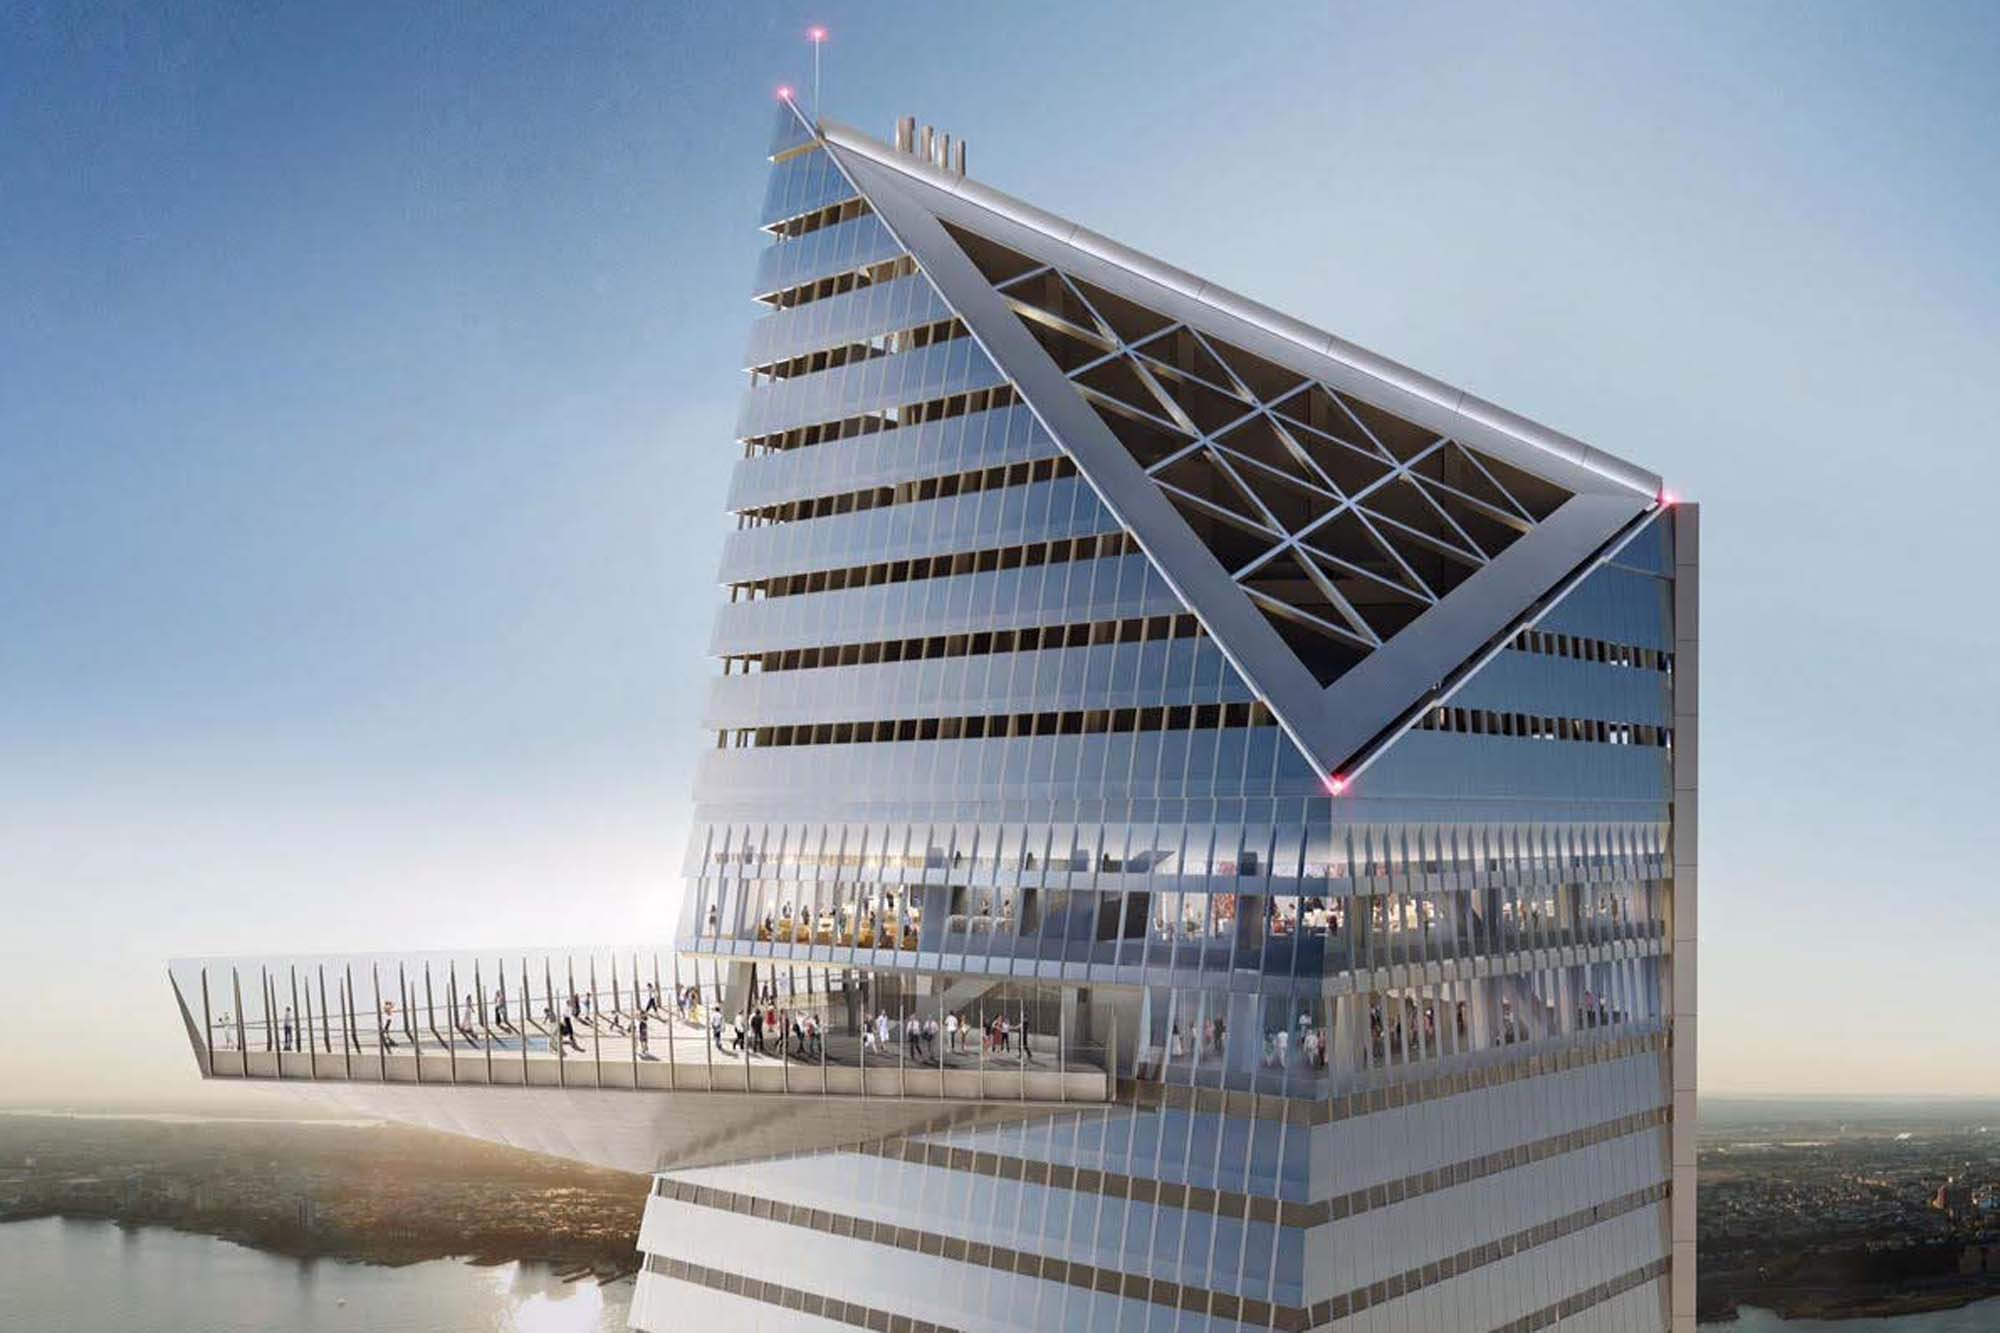 Best Nyc Restaurants 2020 Hudson Yards observation deck, to open in 2020, gets new name